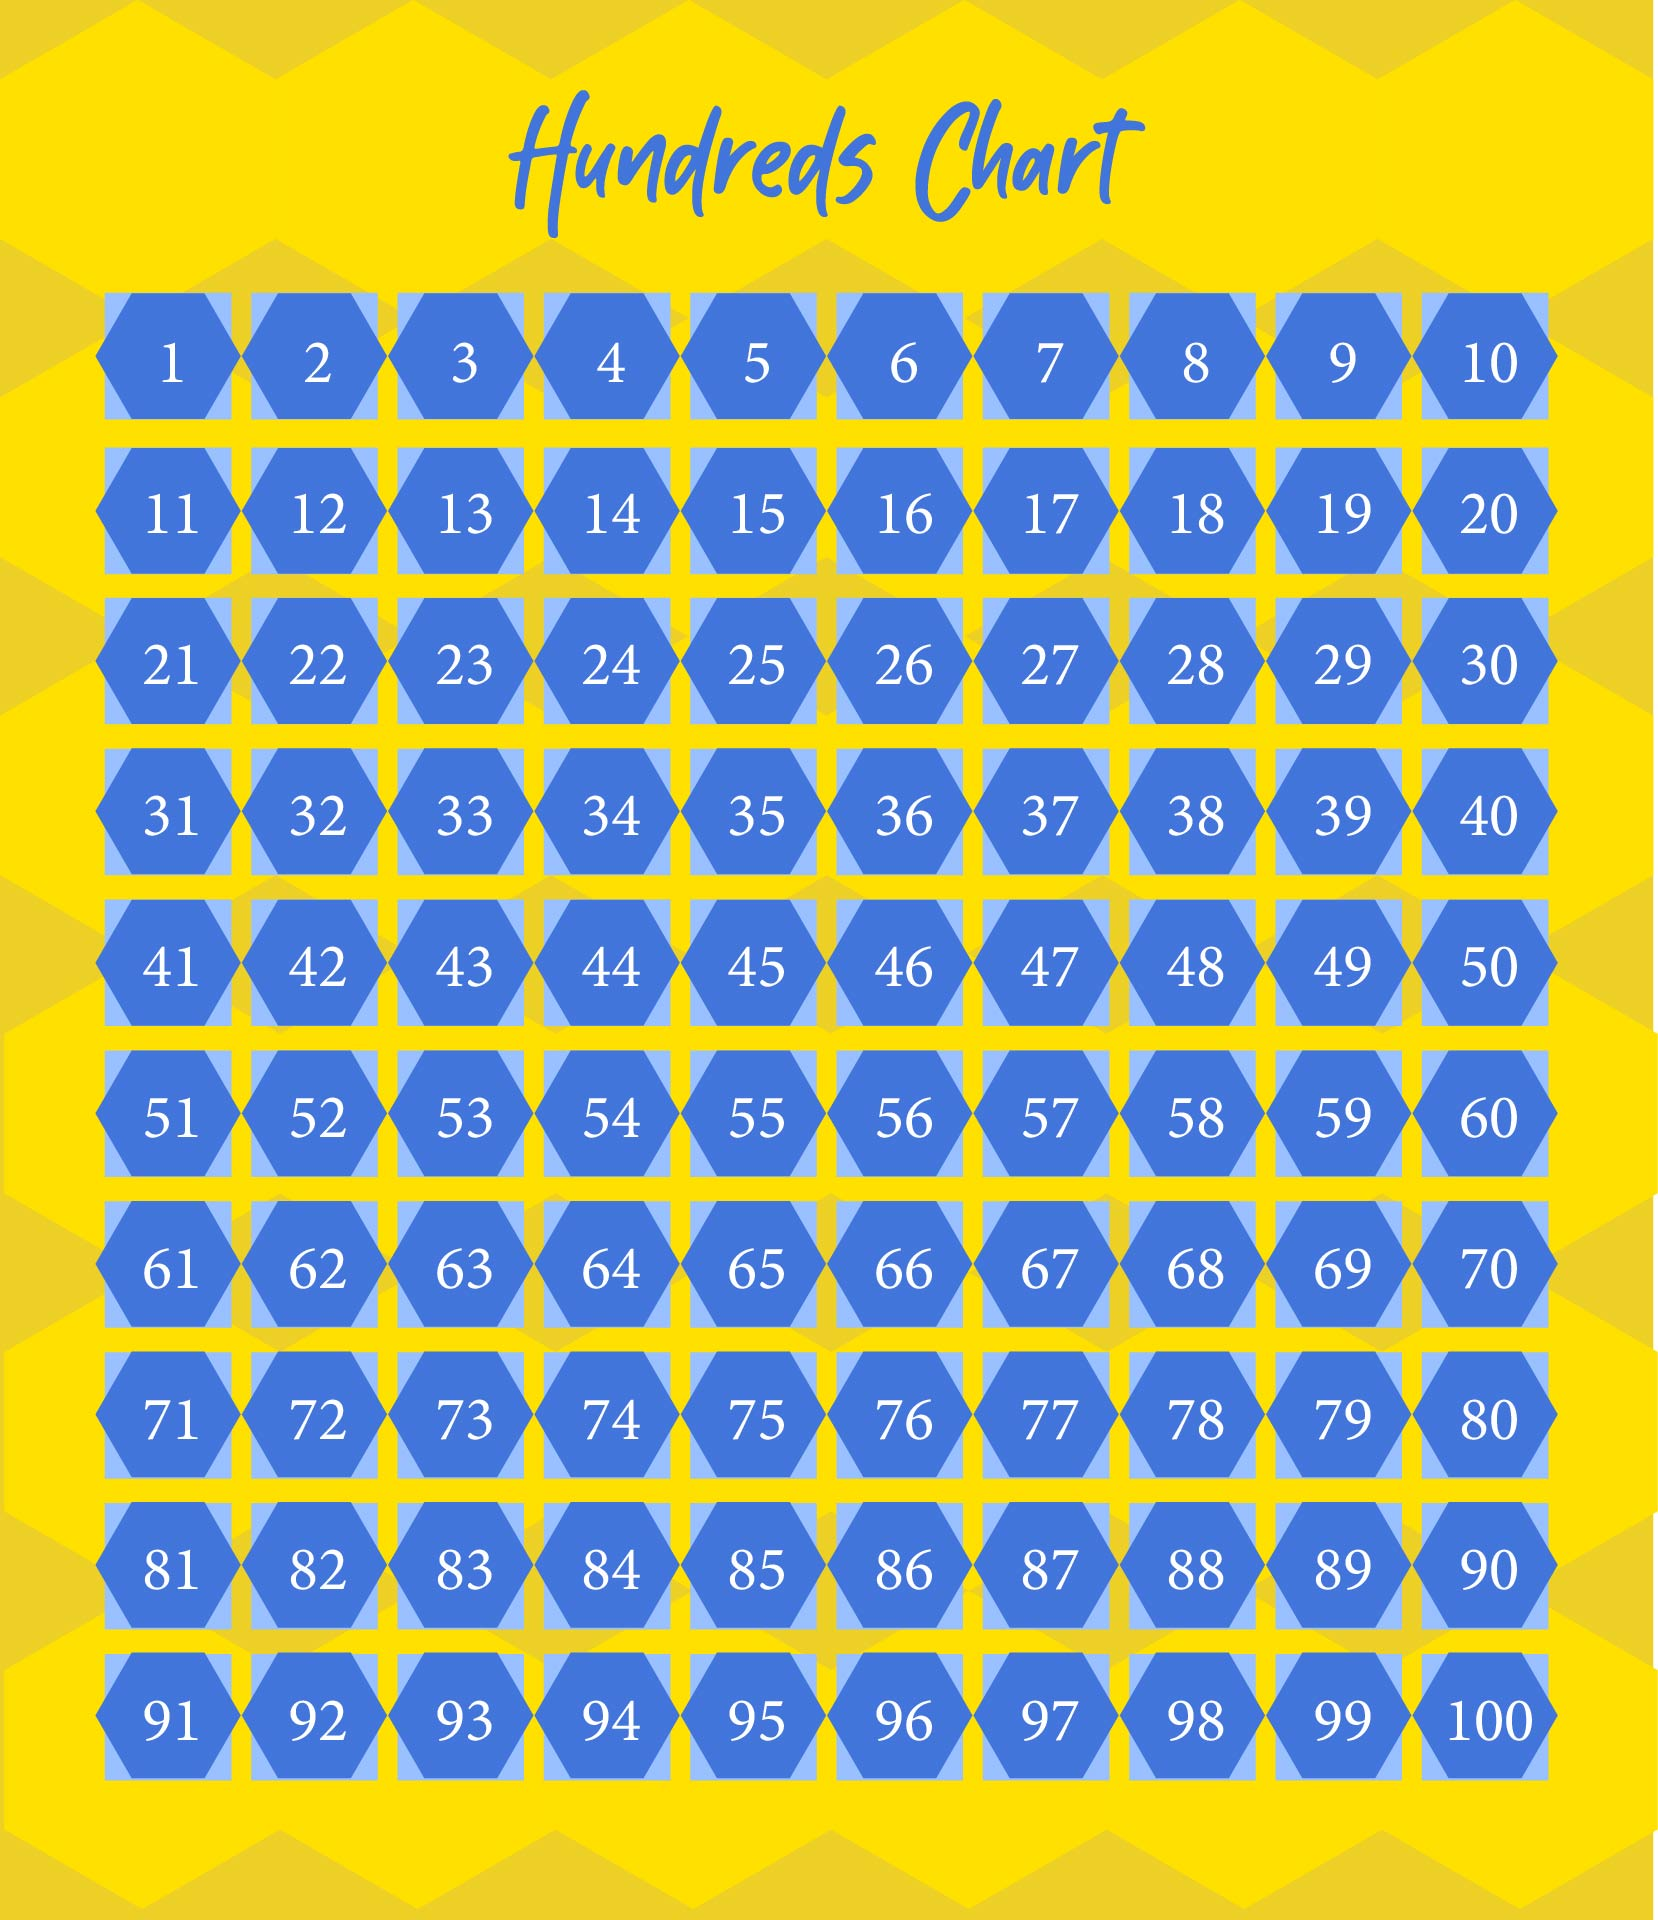 Hundreds Chart Printable